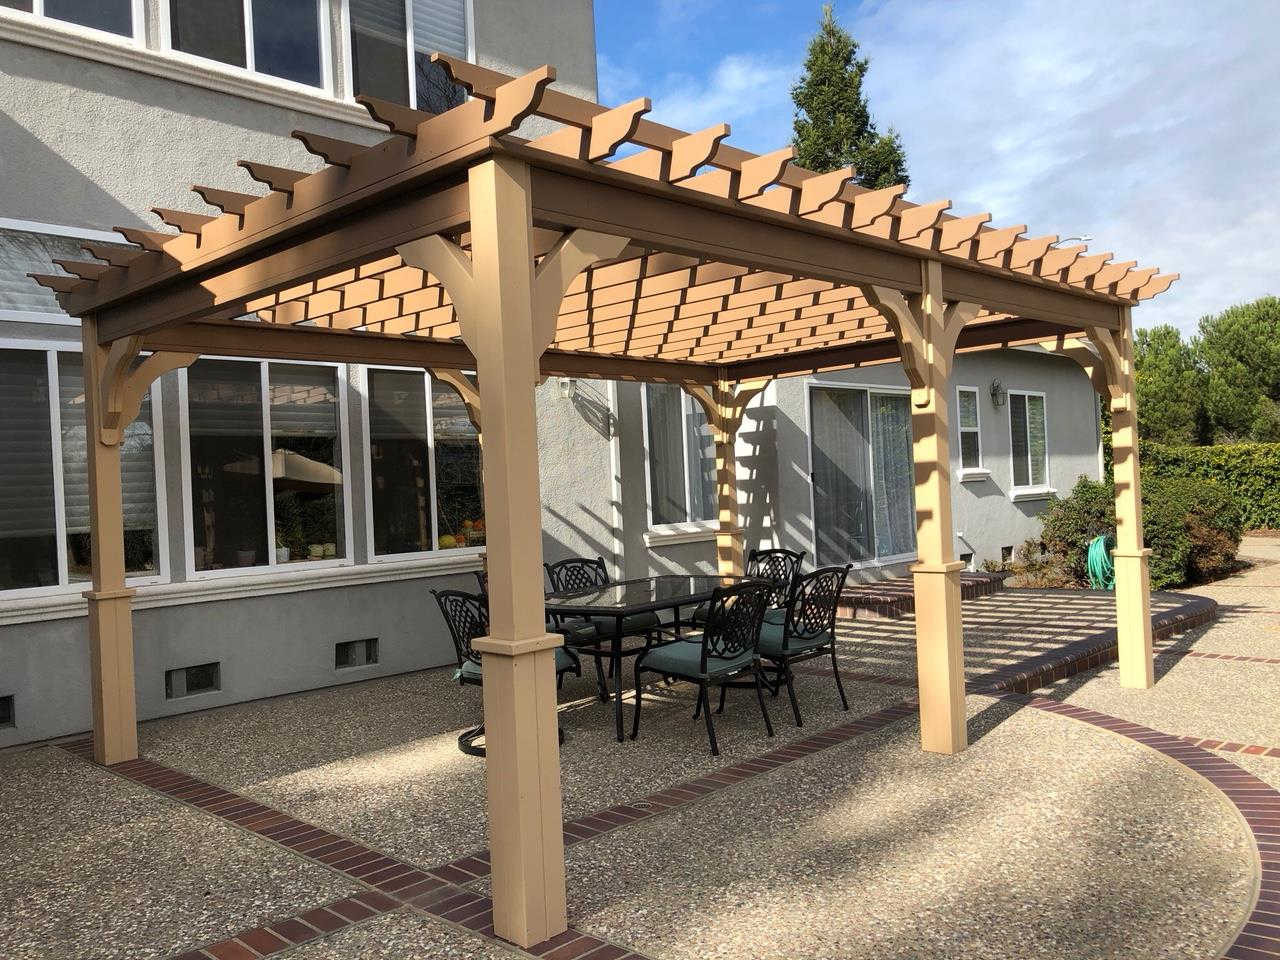 12x18 Serenity Cedar Pergola Kit makes a delightful setting for breakfast outside behind your home.